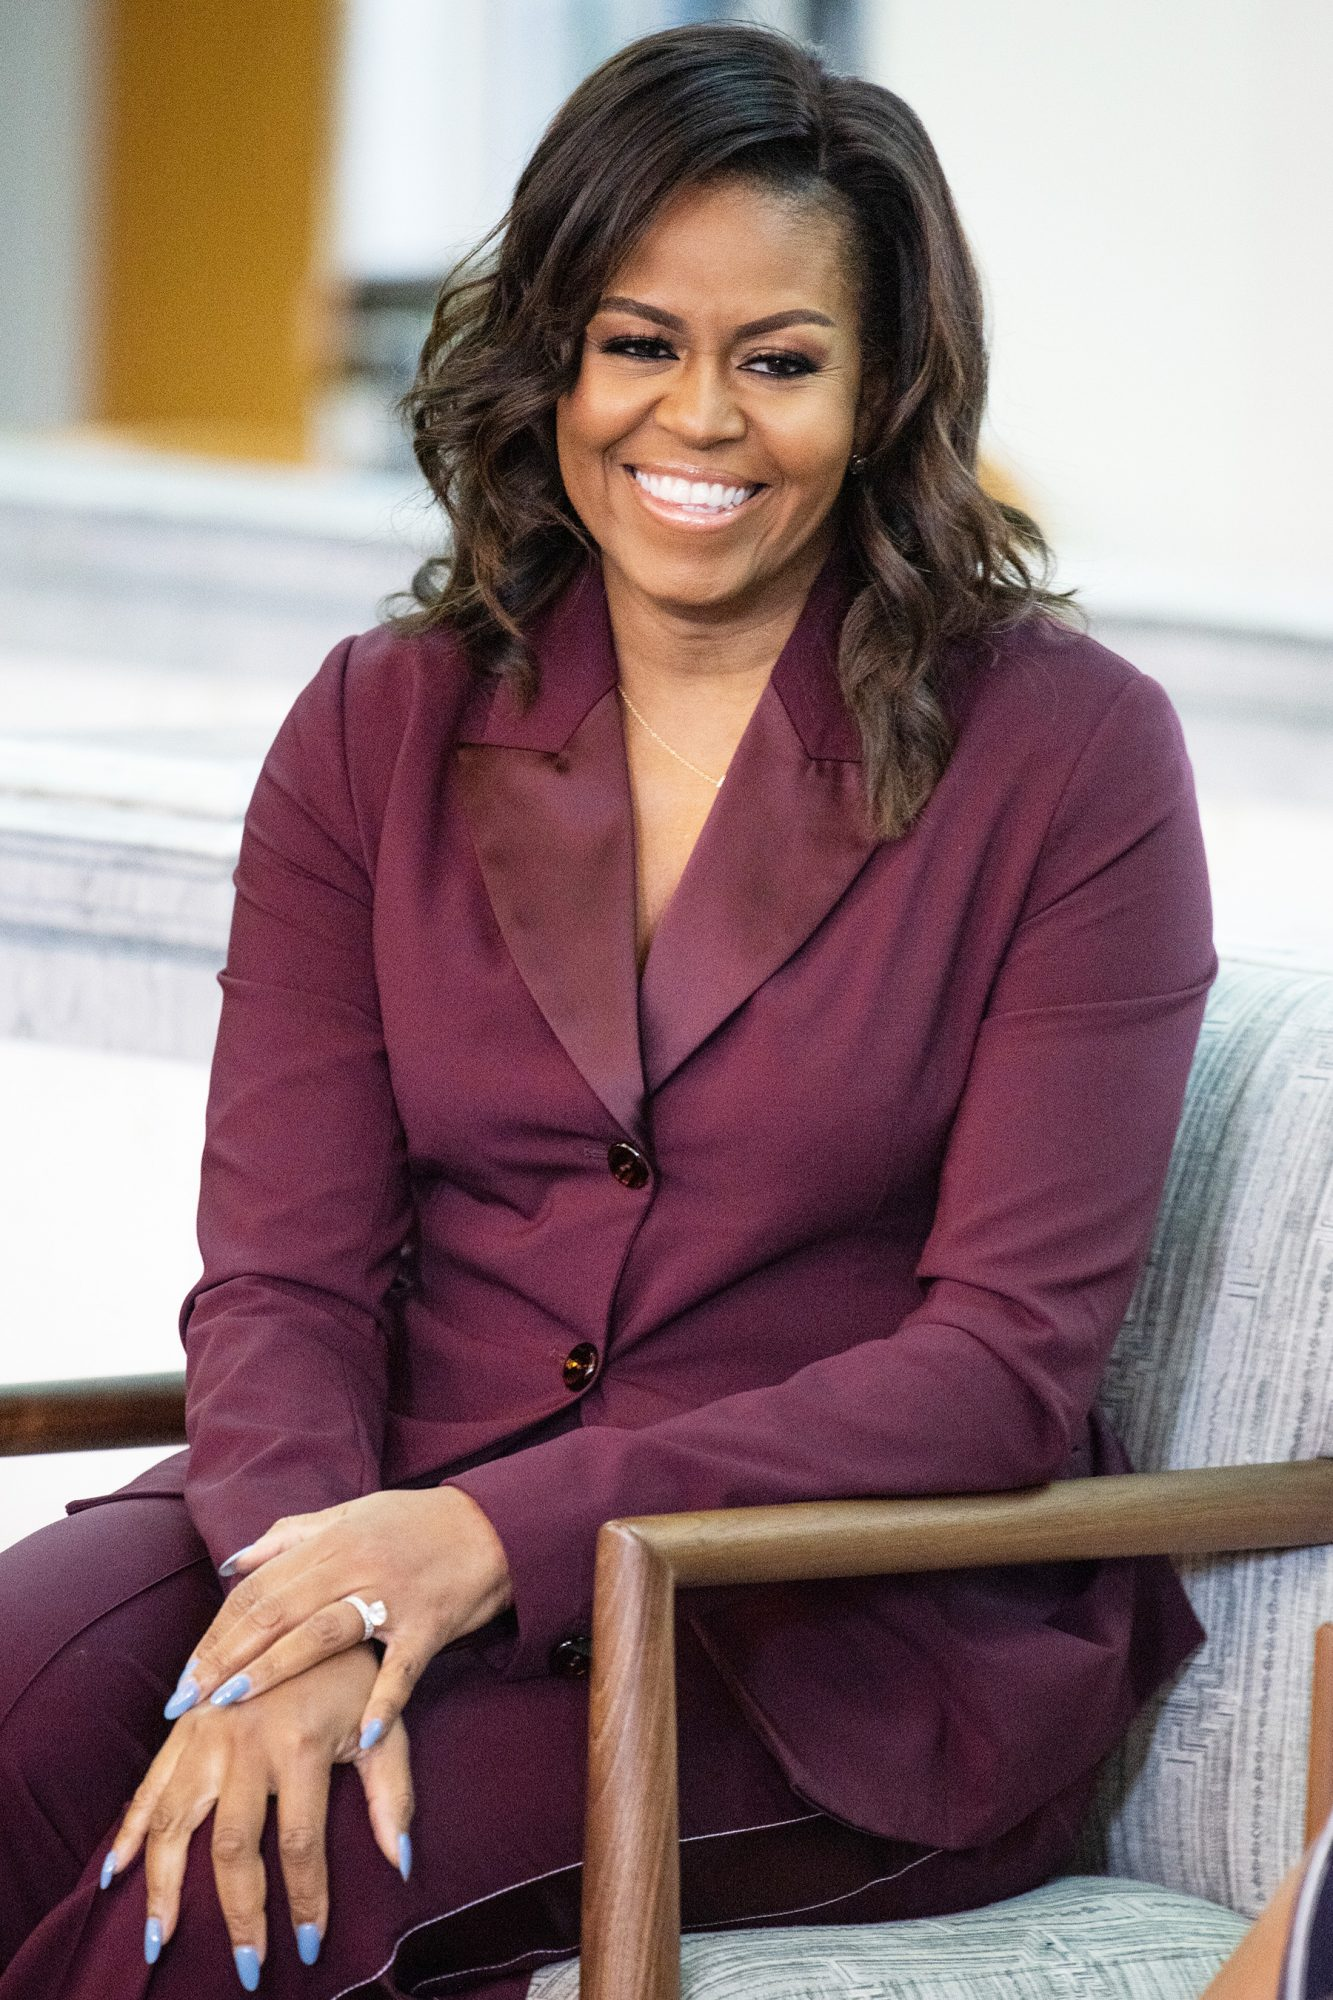 Michelle Obama Visits The Tacoma Public Library